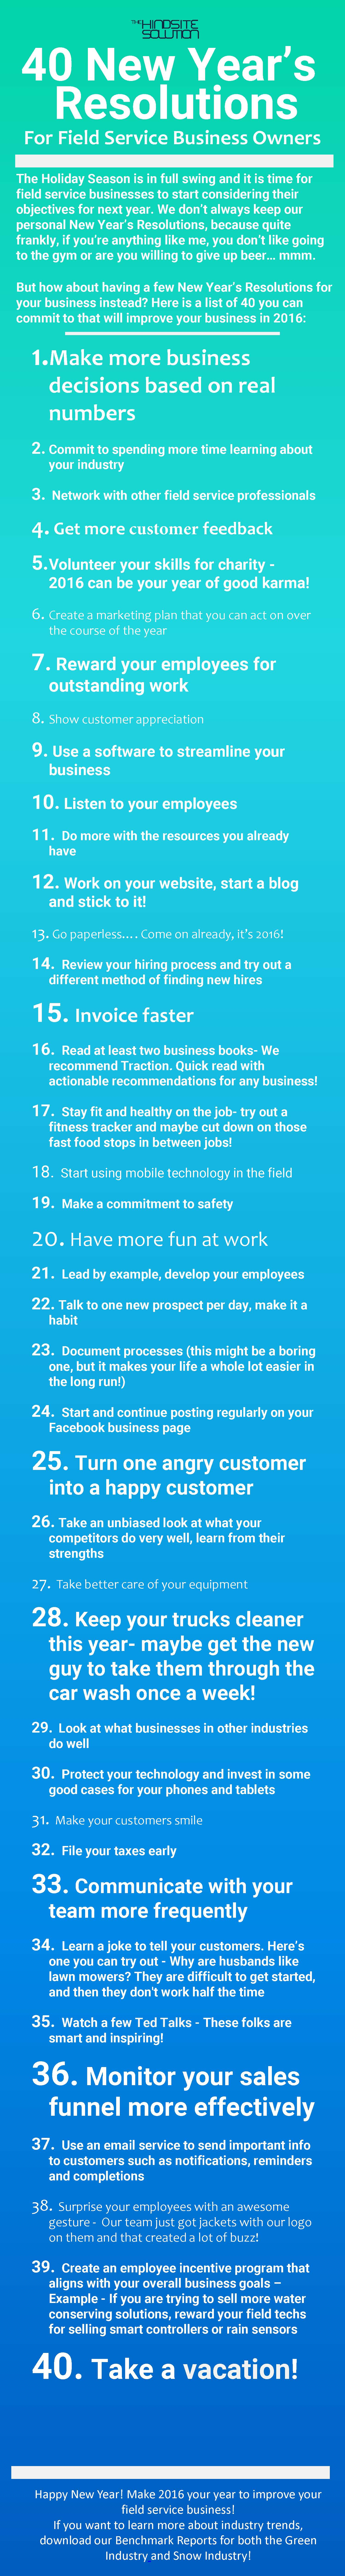 New_Years_Resolutions-for-field-service-businesses-no-links-1.jpg